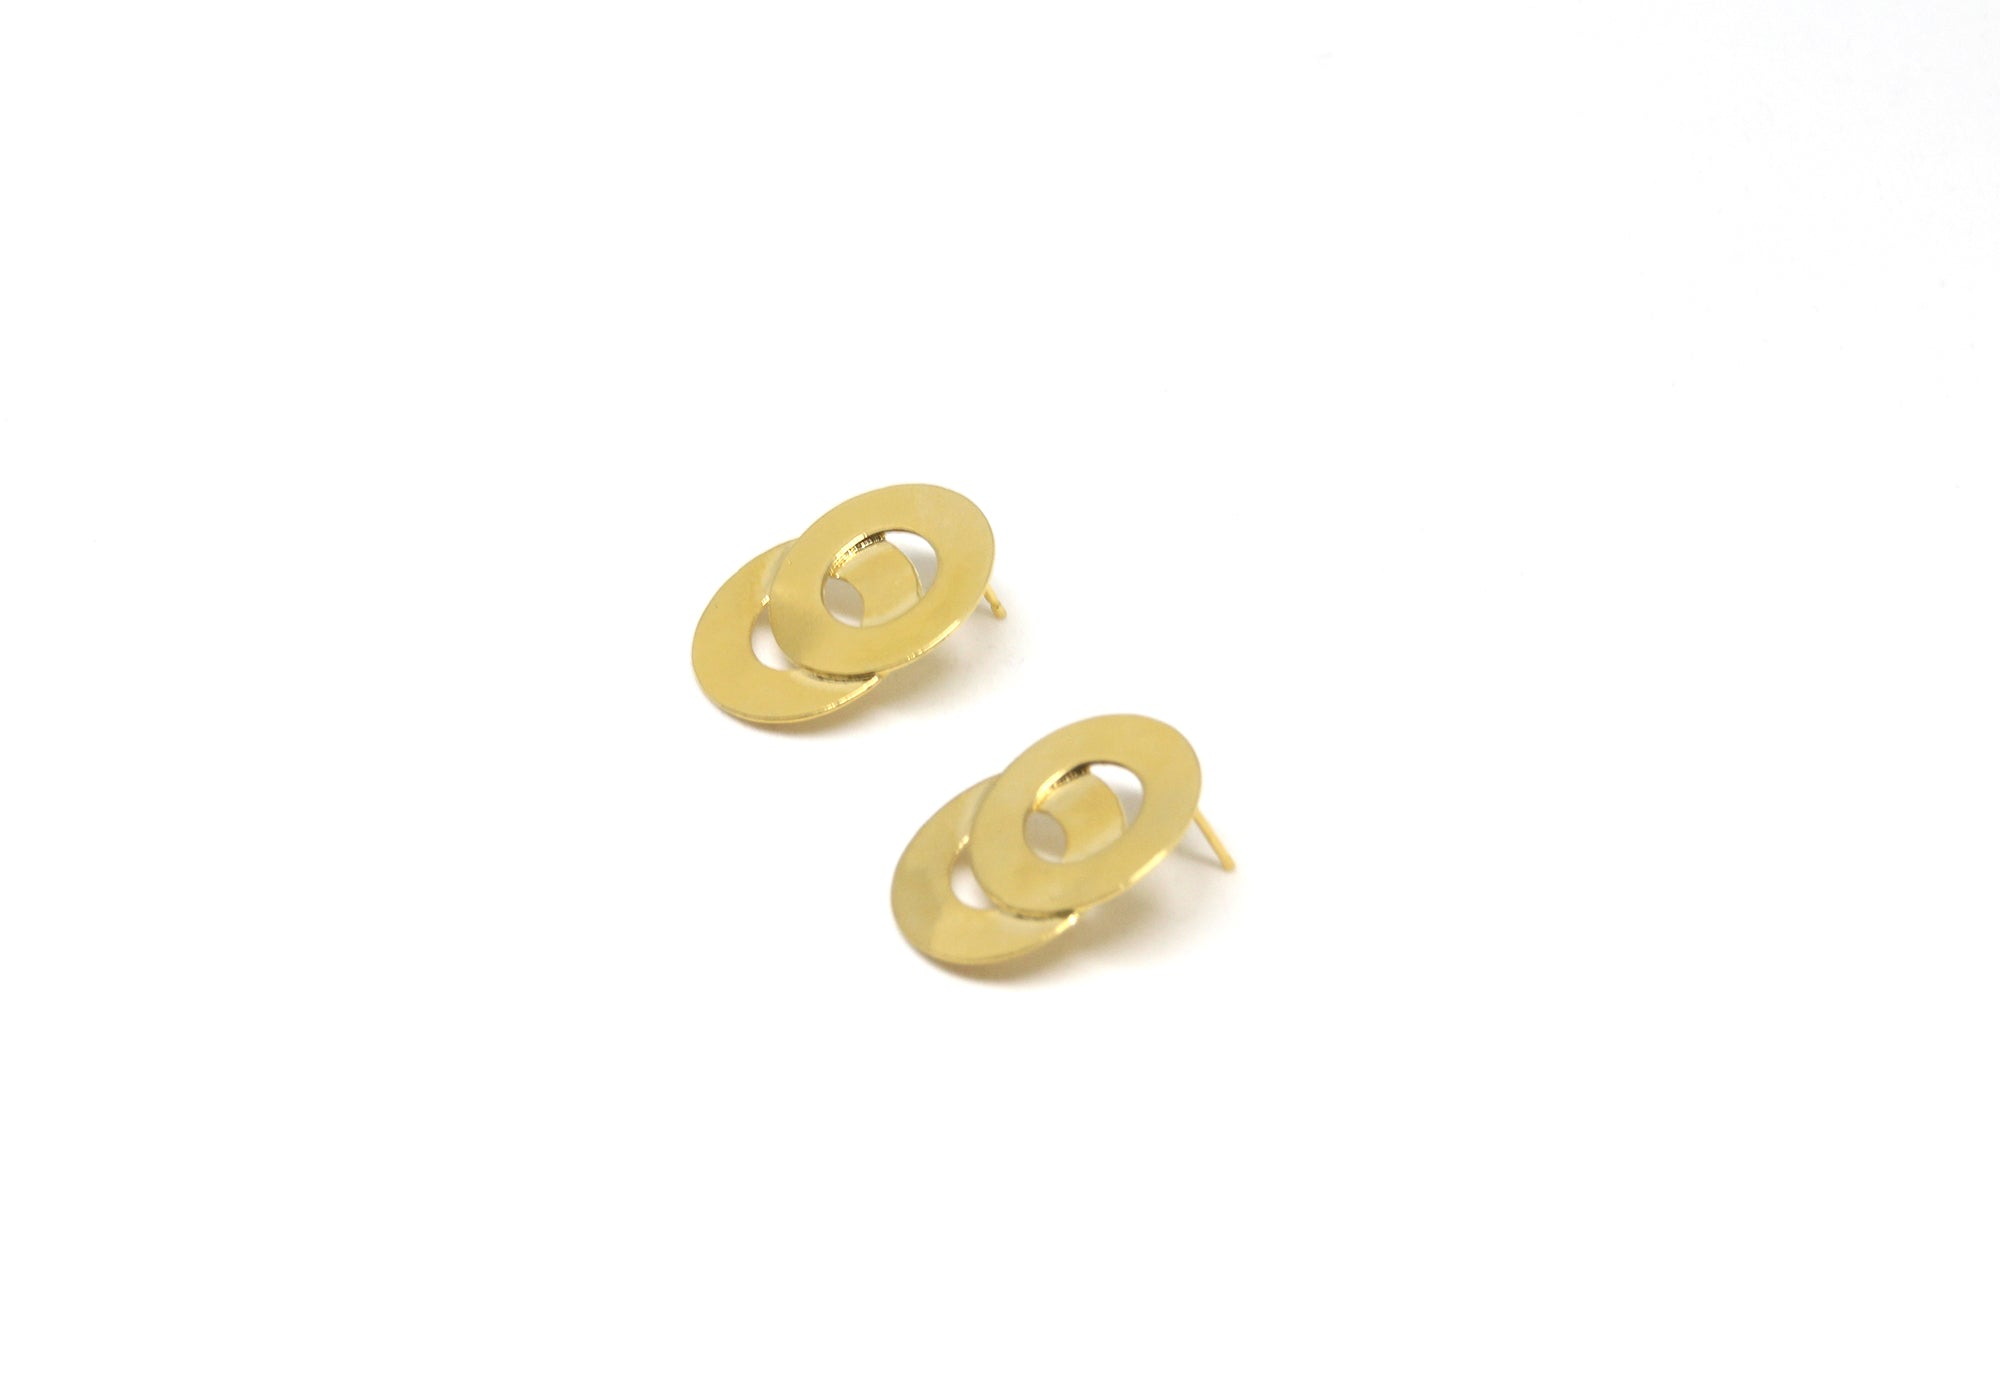 llayers earrings loop gold circles bucles d'oreilles or cercles